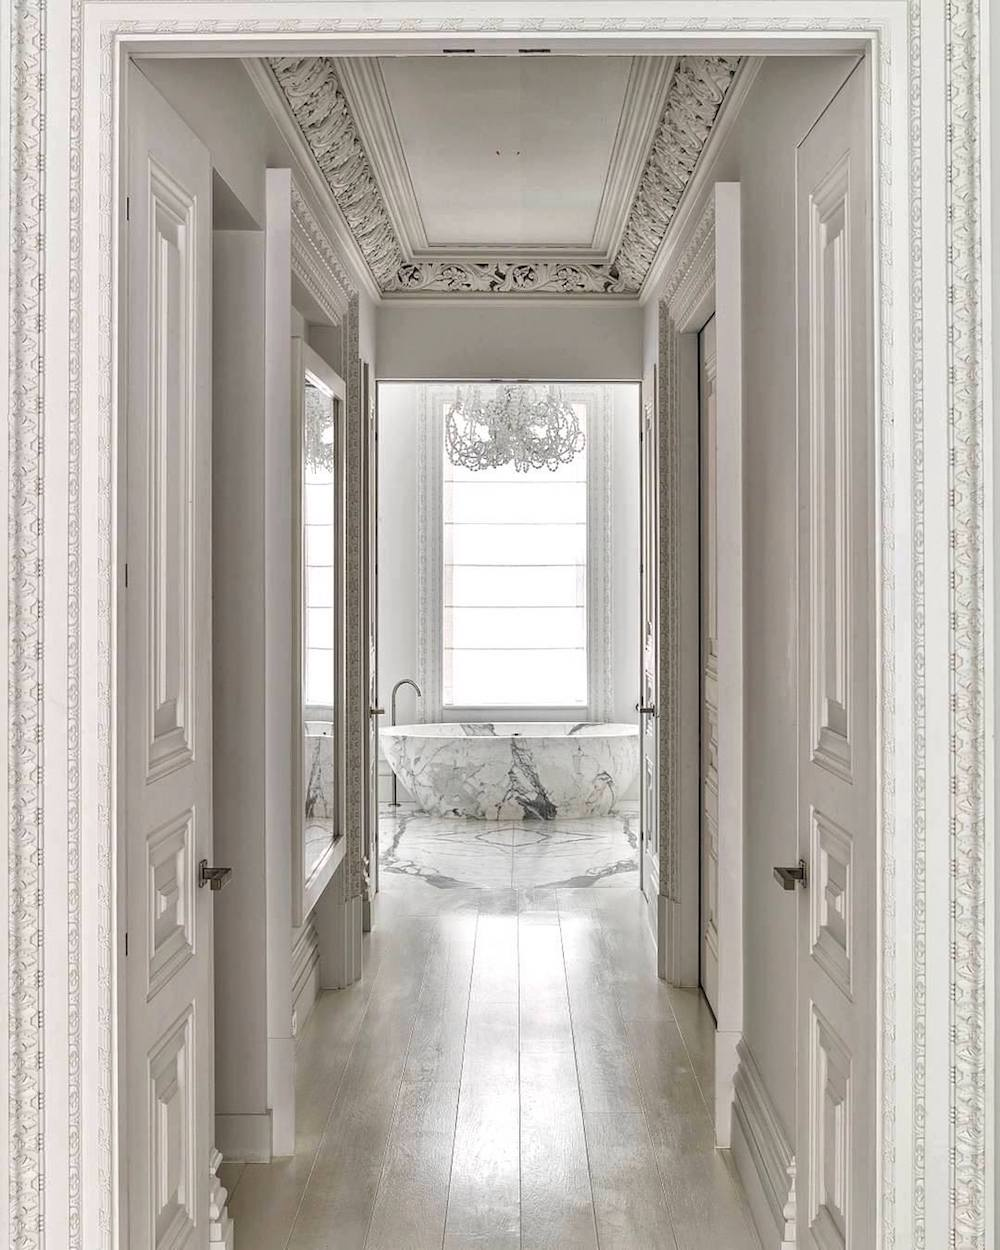 Douglas Friedman Photography: Hallway with marble bathroom view